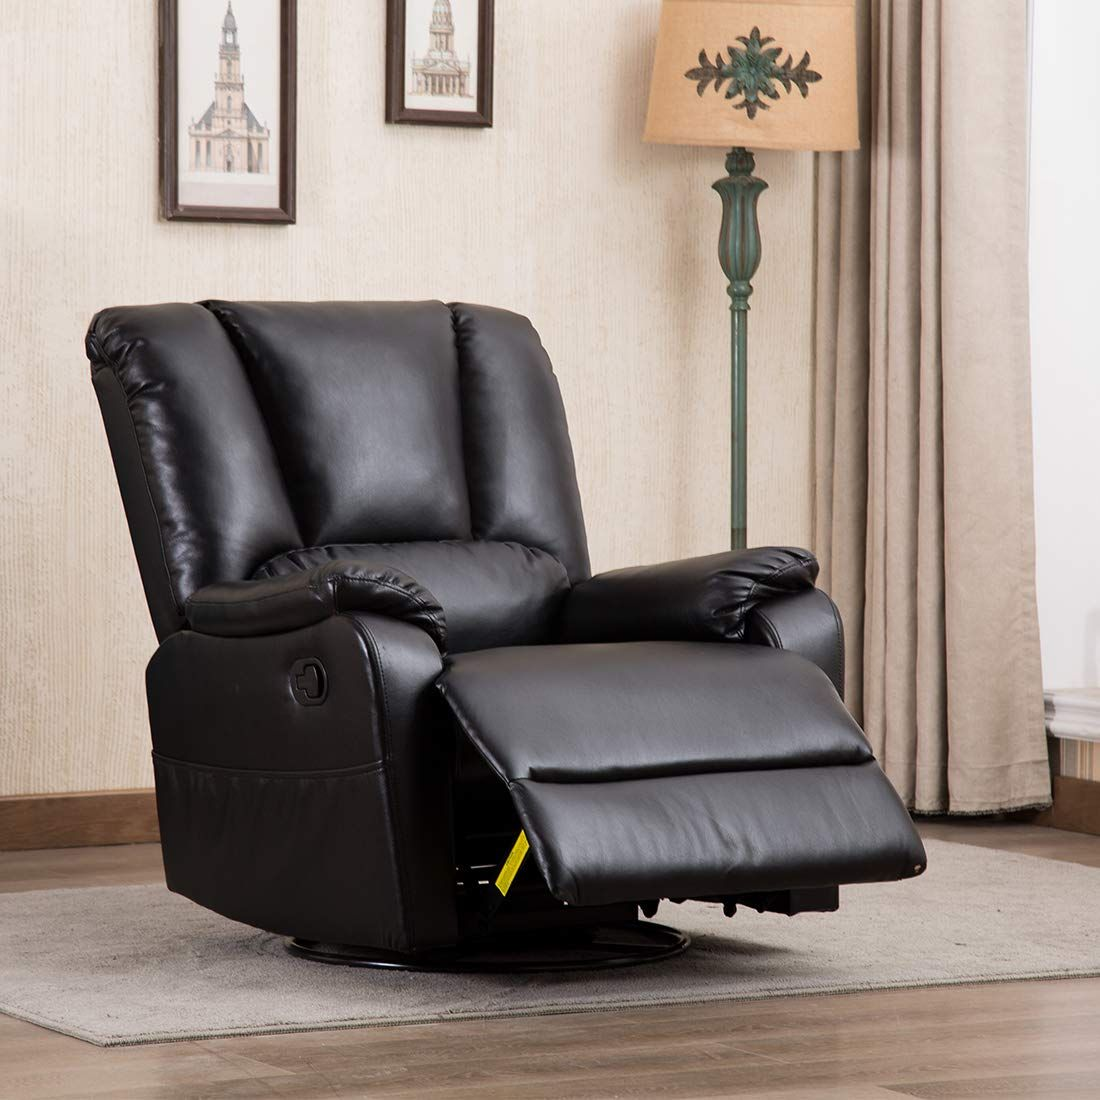 CANMOV Contemporary Breathable Bonded Leather Swivel